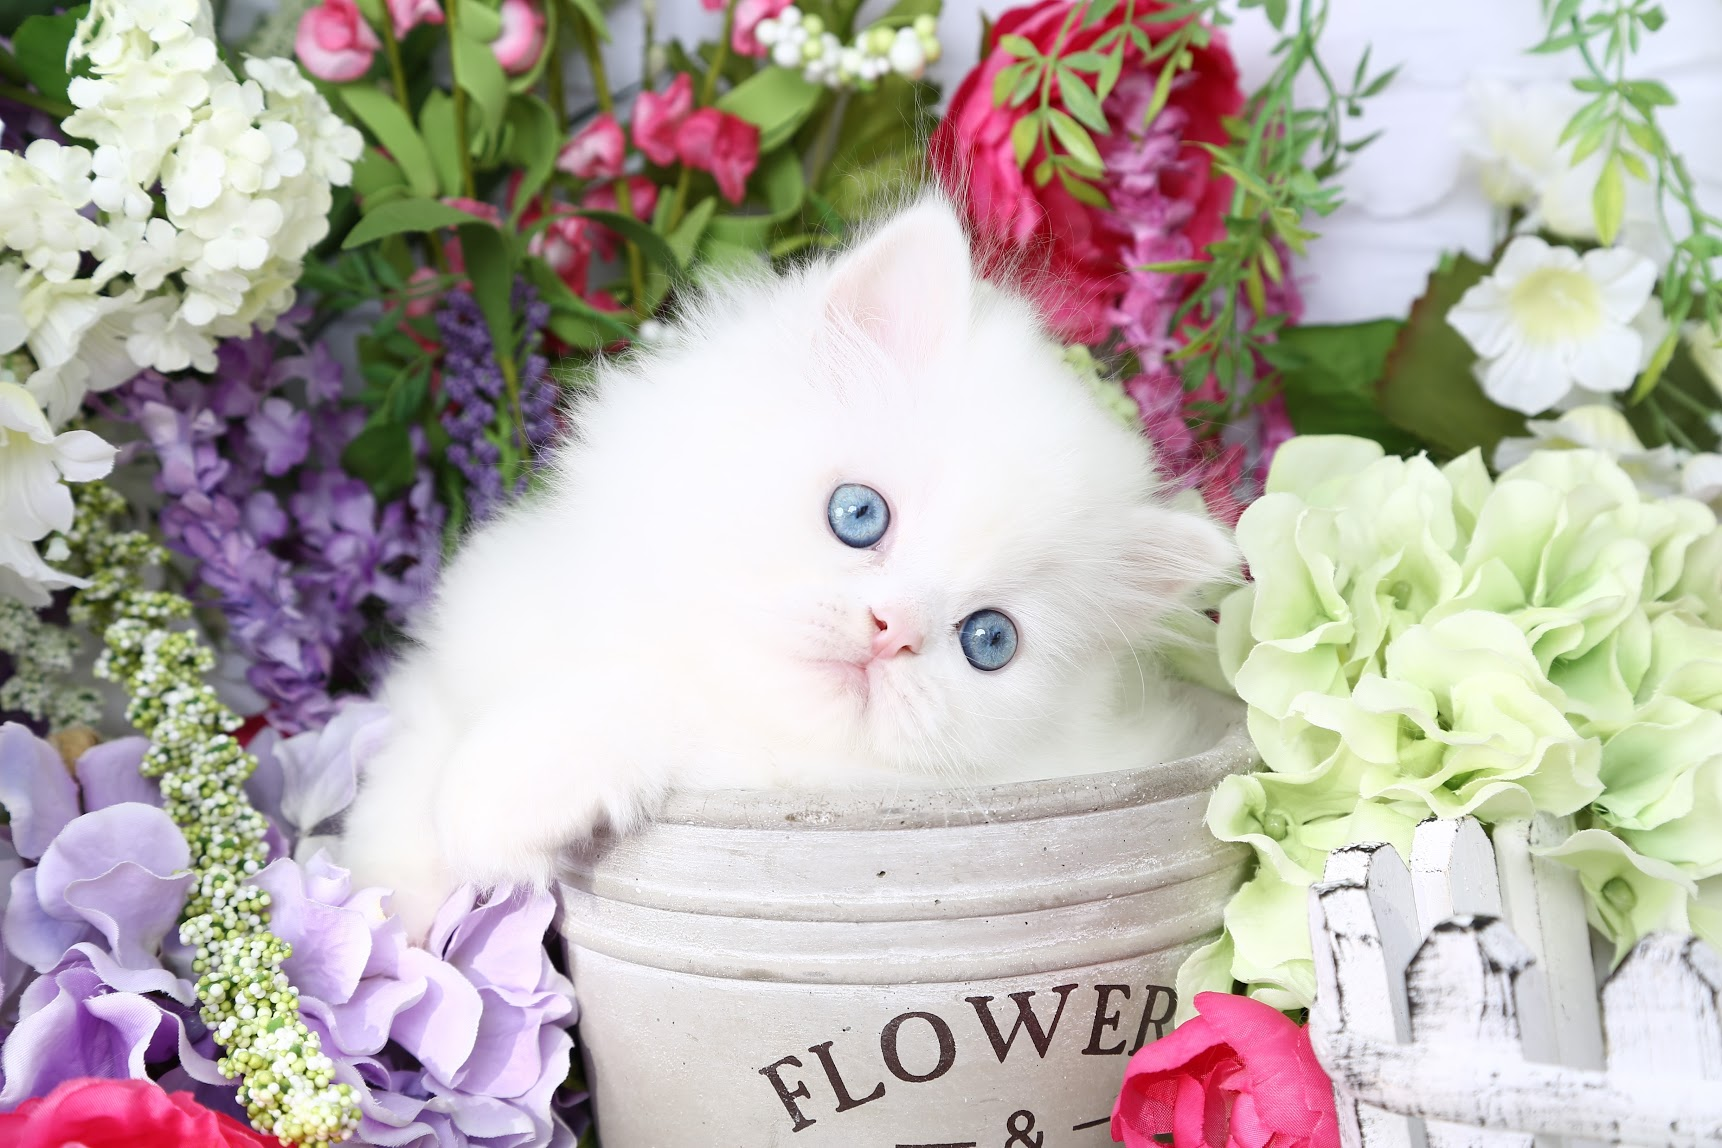 Doll Face Persian Kittens - White Persian Kitten